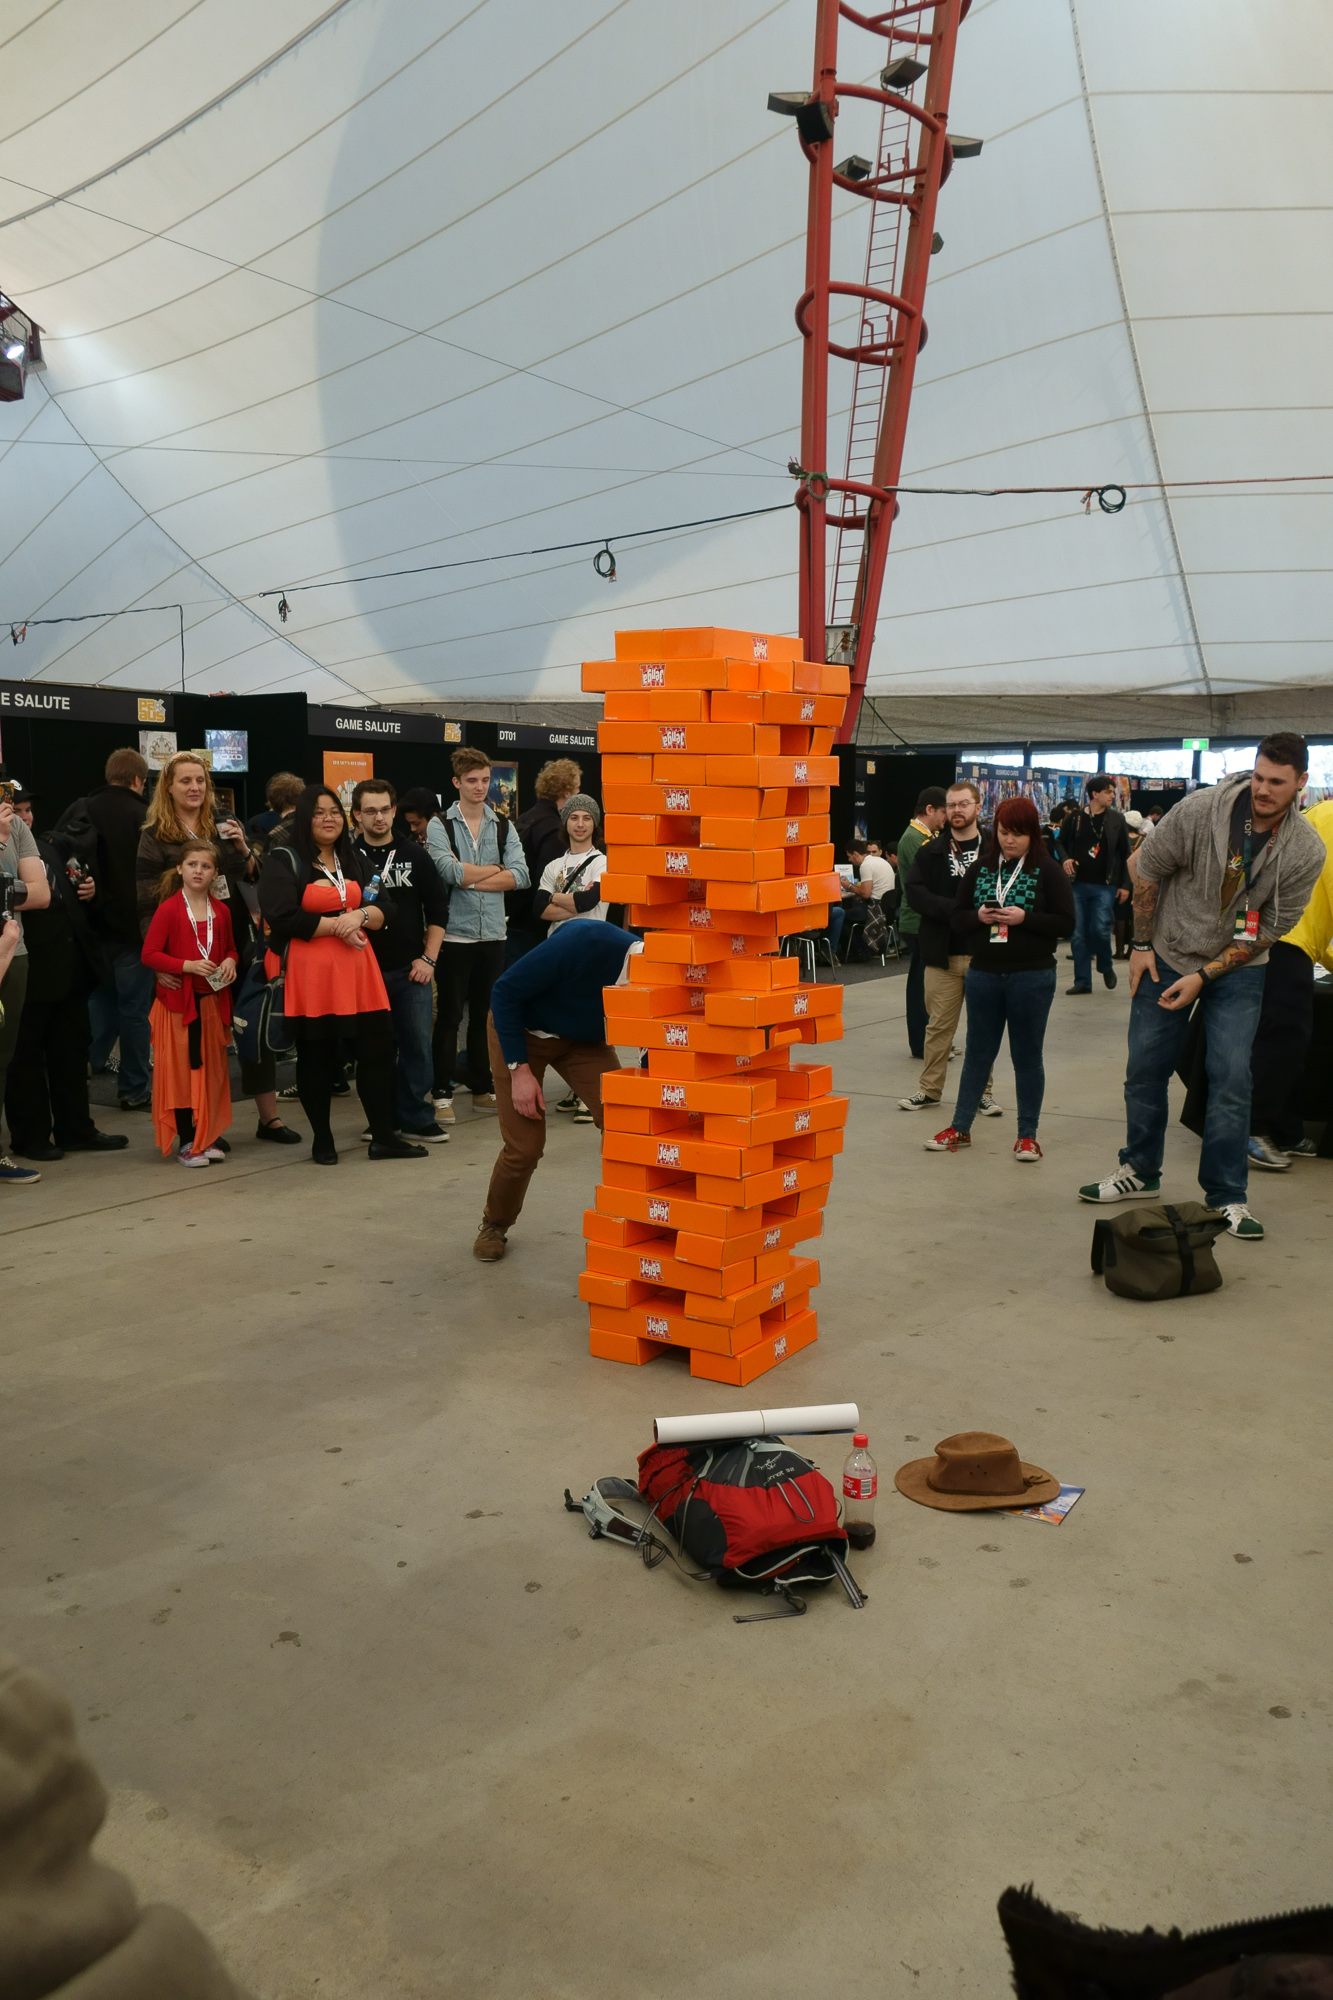 Giant Jenga in the Big Top